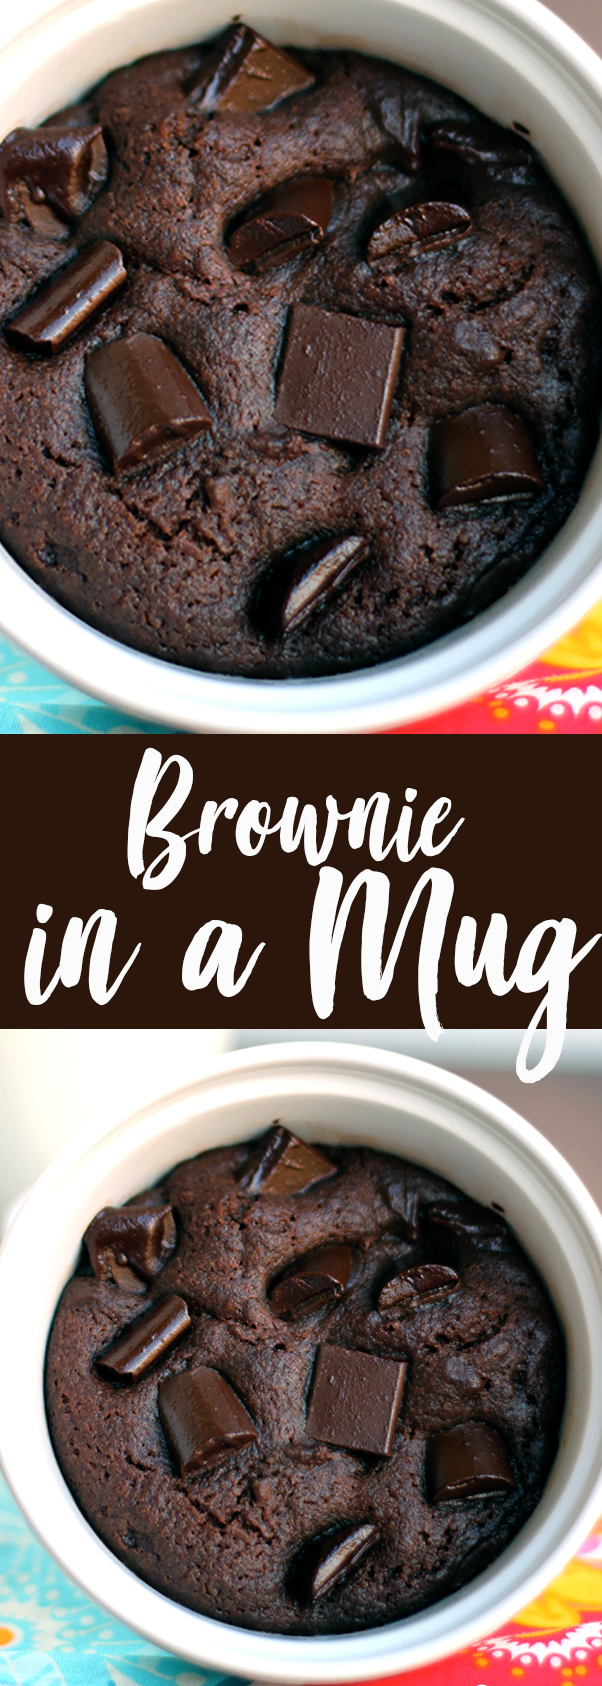 Brownie in a Mug - the best brownie in a mug recipe!